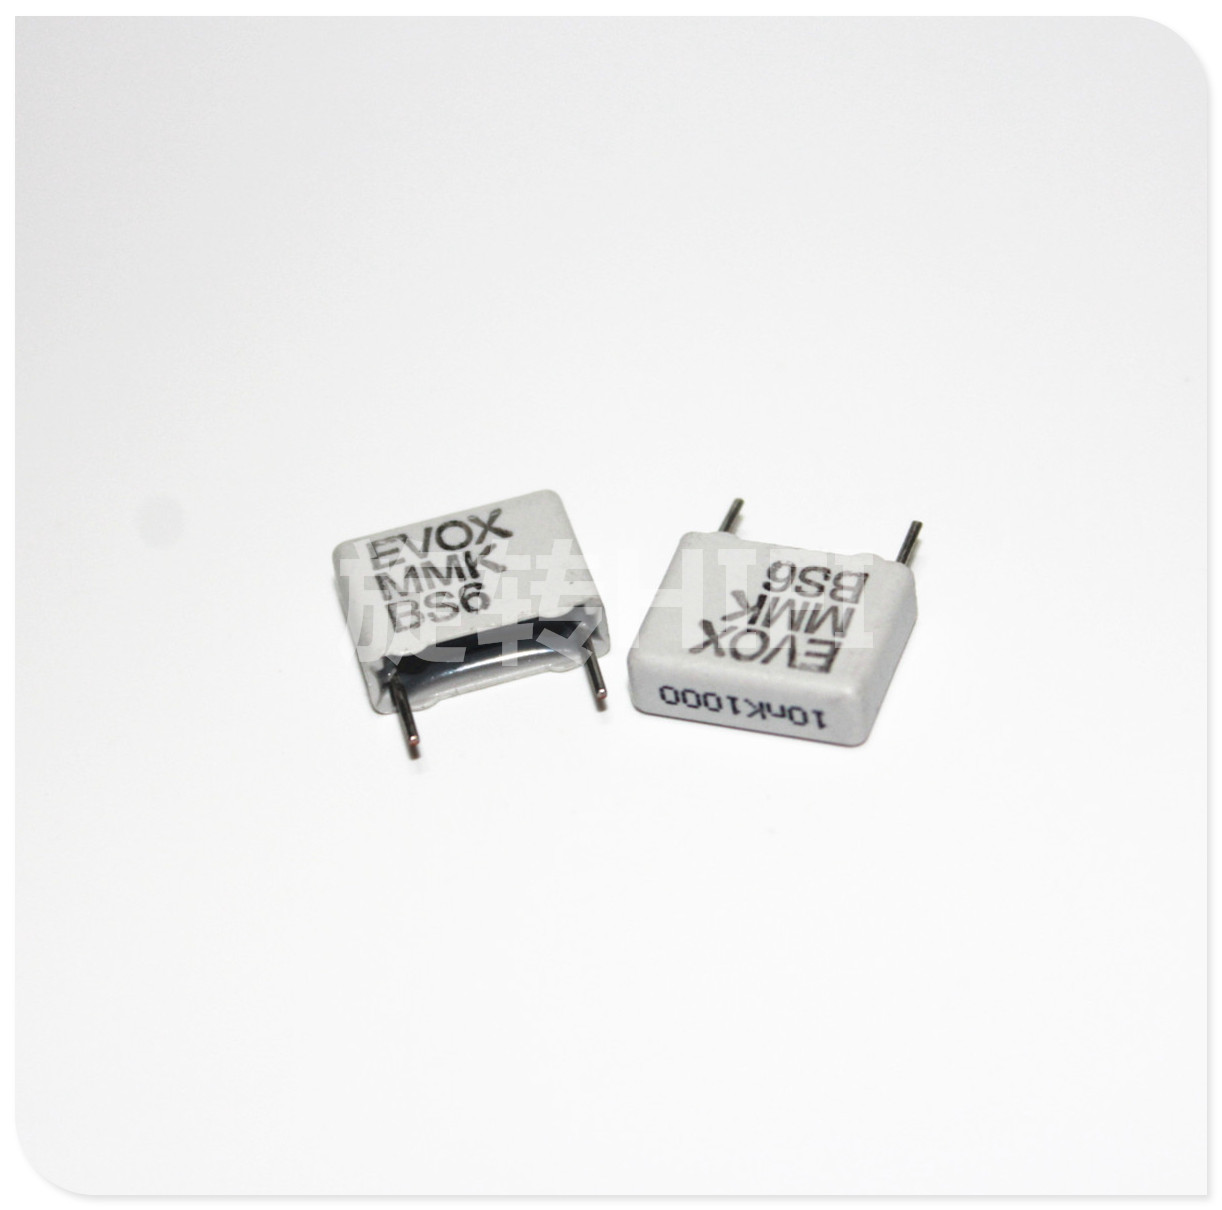 20PCS NEW EVOX MMK10 0.01UF 1000V P10mm Film Capacitor MMK 103/1000v Audio 103 Hot Sale 10nf 1kv